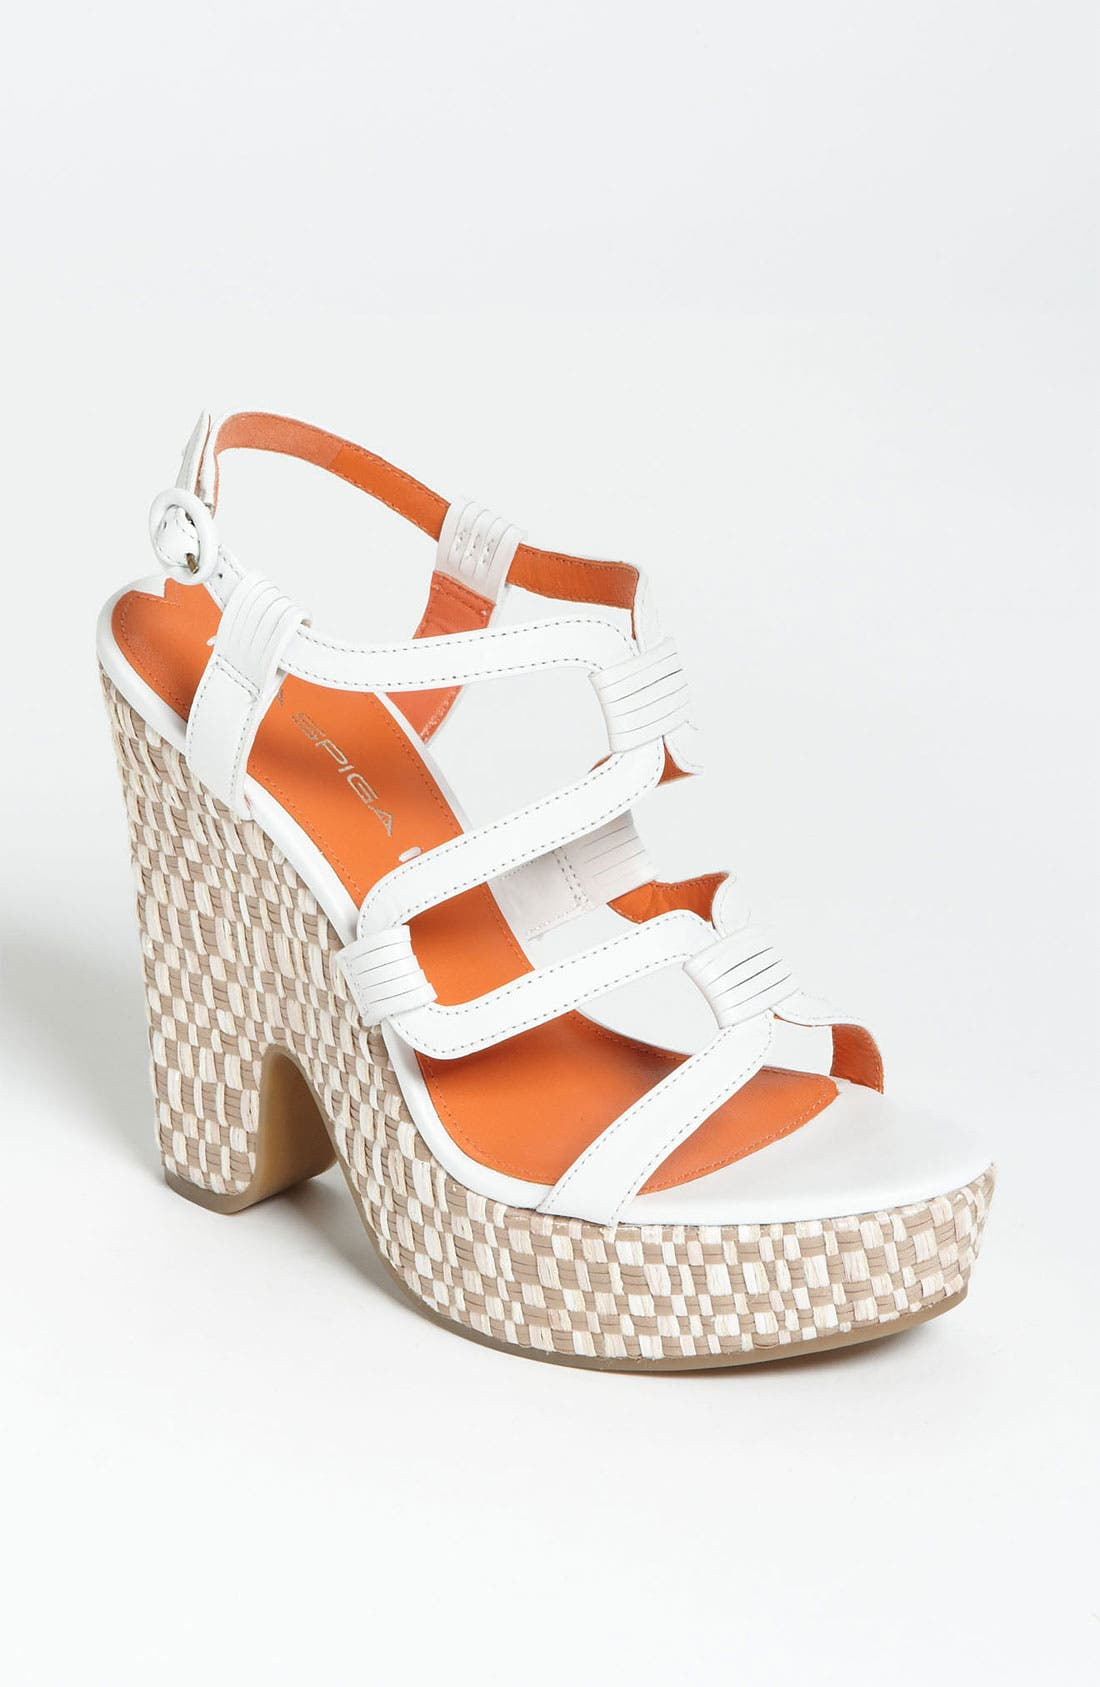 Main Image - Via Spiga 'Cai' Wedge Sandal